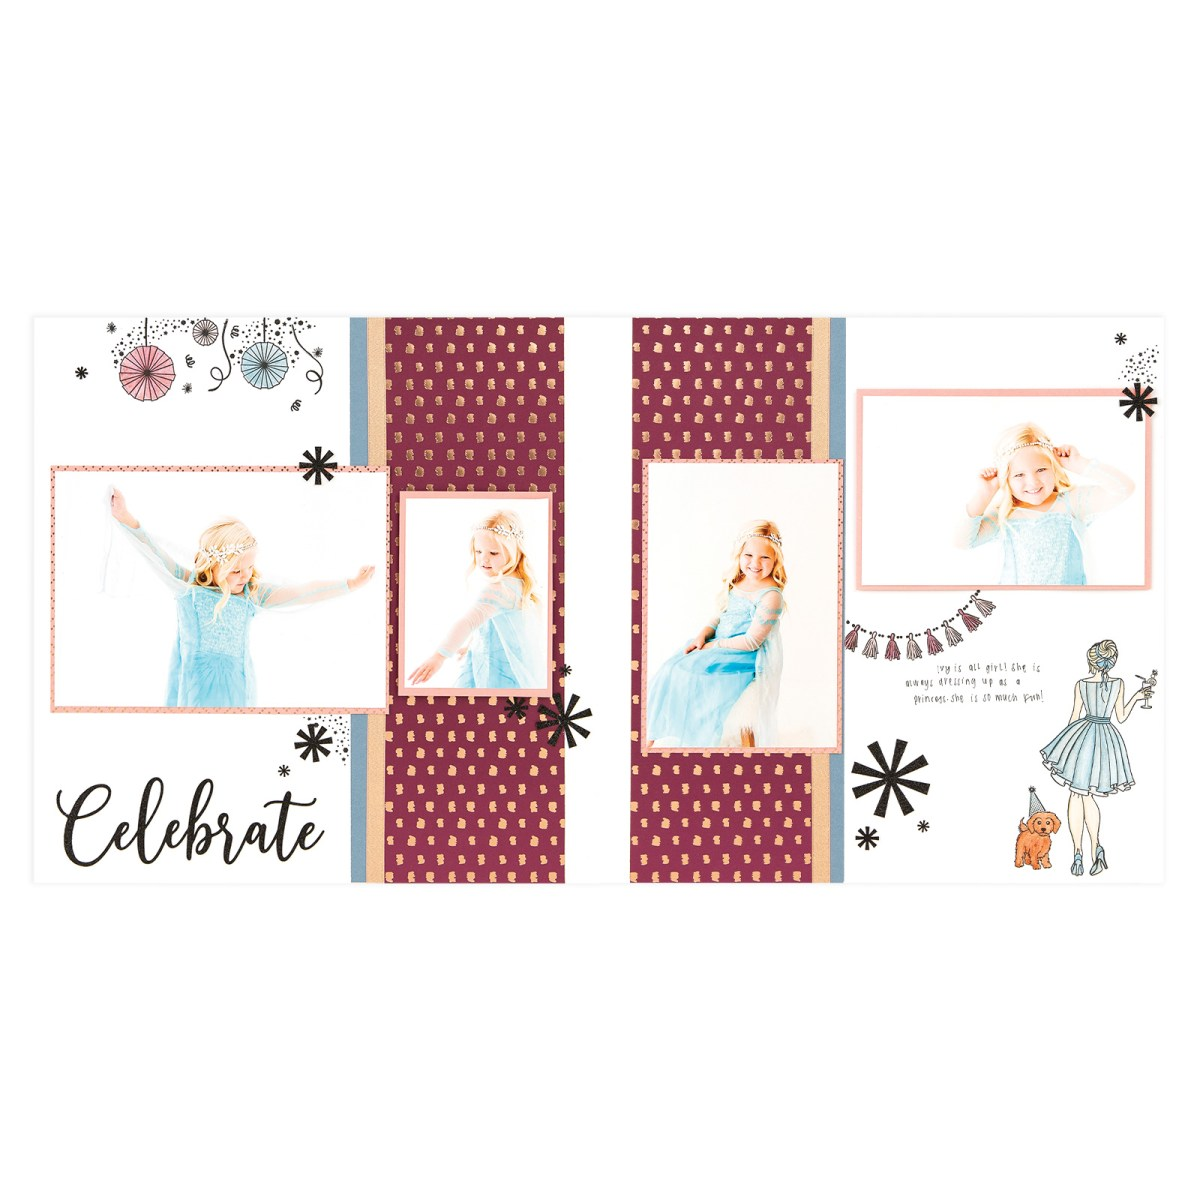 National Scrapbooking Day #closetomyheart #ctmh #nsd #ctmhnsd #nationalscrapbookingday #closetomyheartnsd #closetomyheartnationalscrapbookingday #partygirl #scrapbooking #scrapbookingworkshop